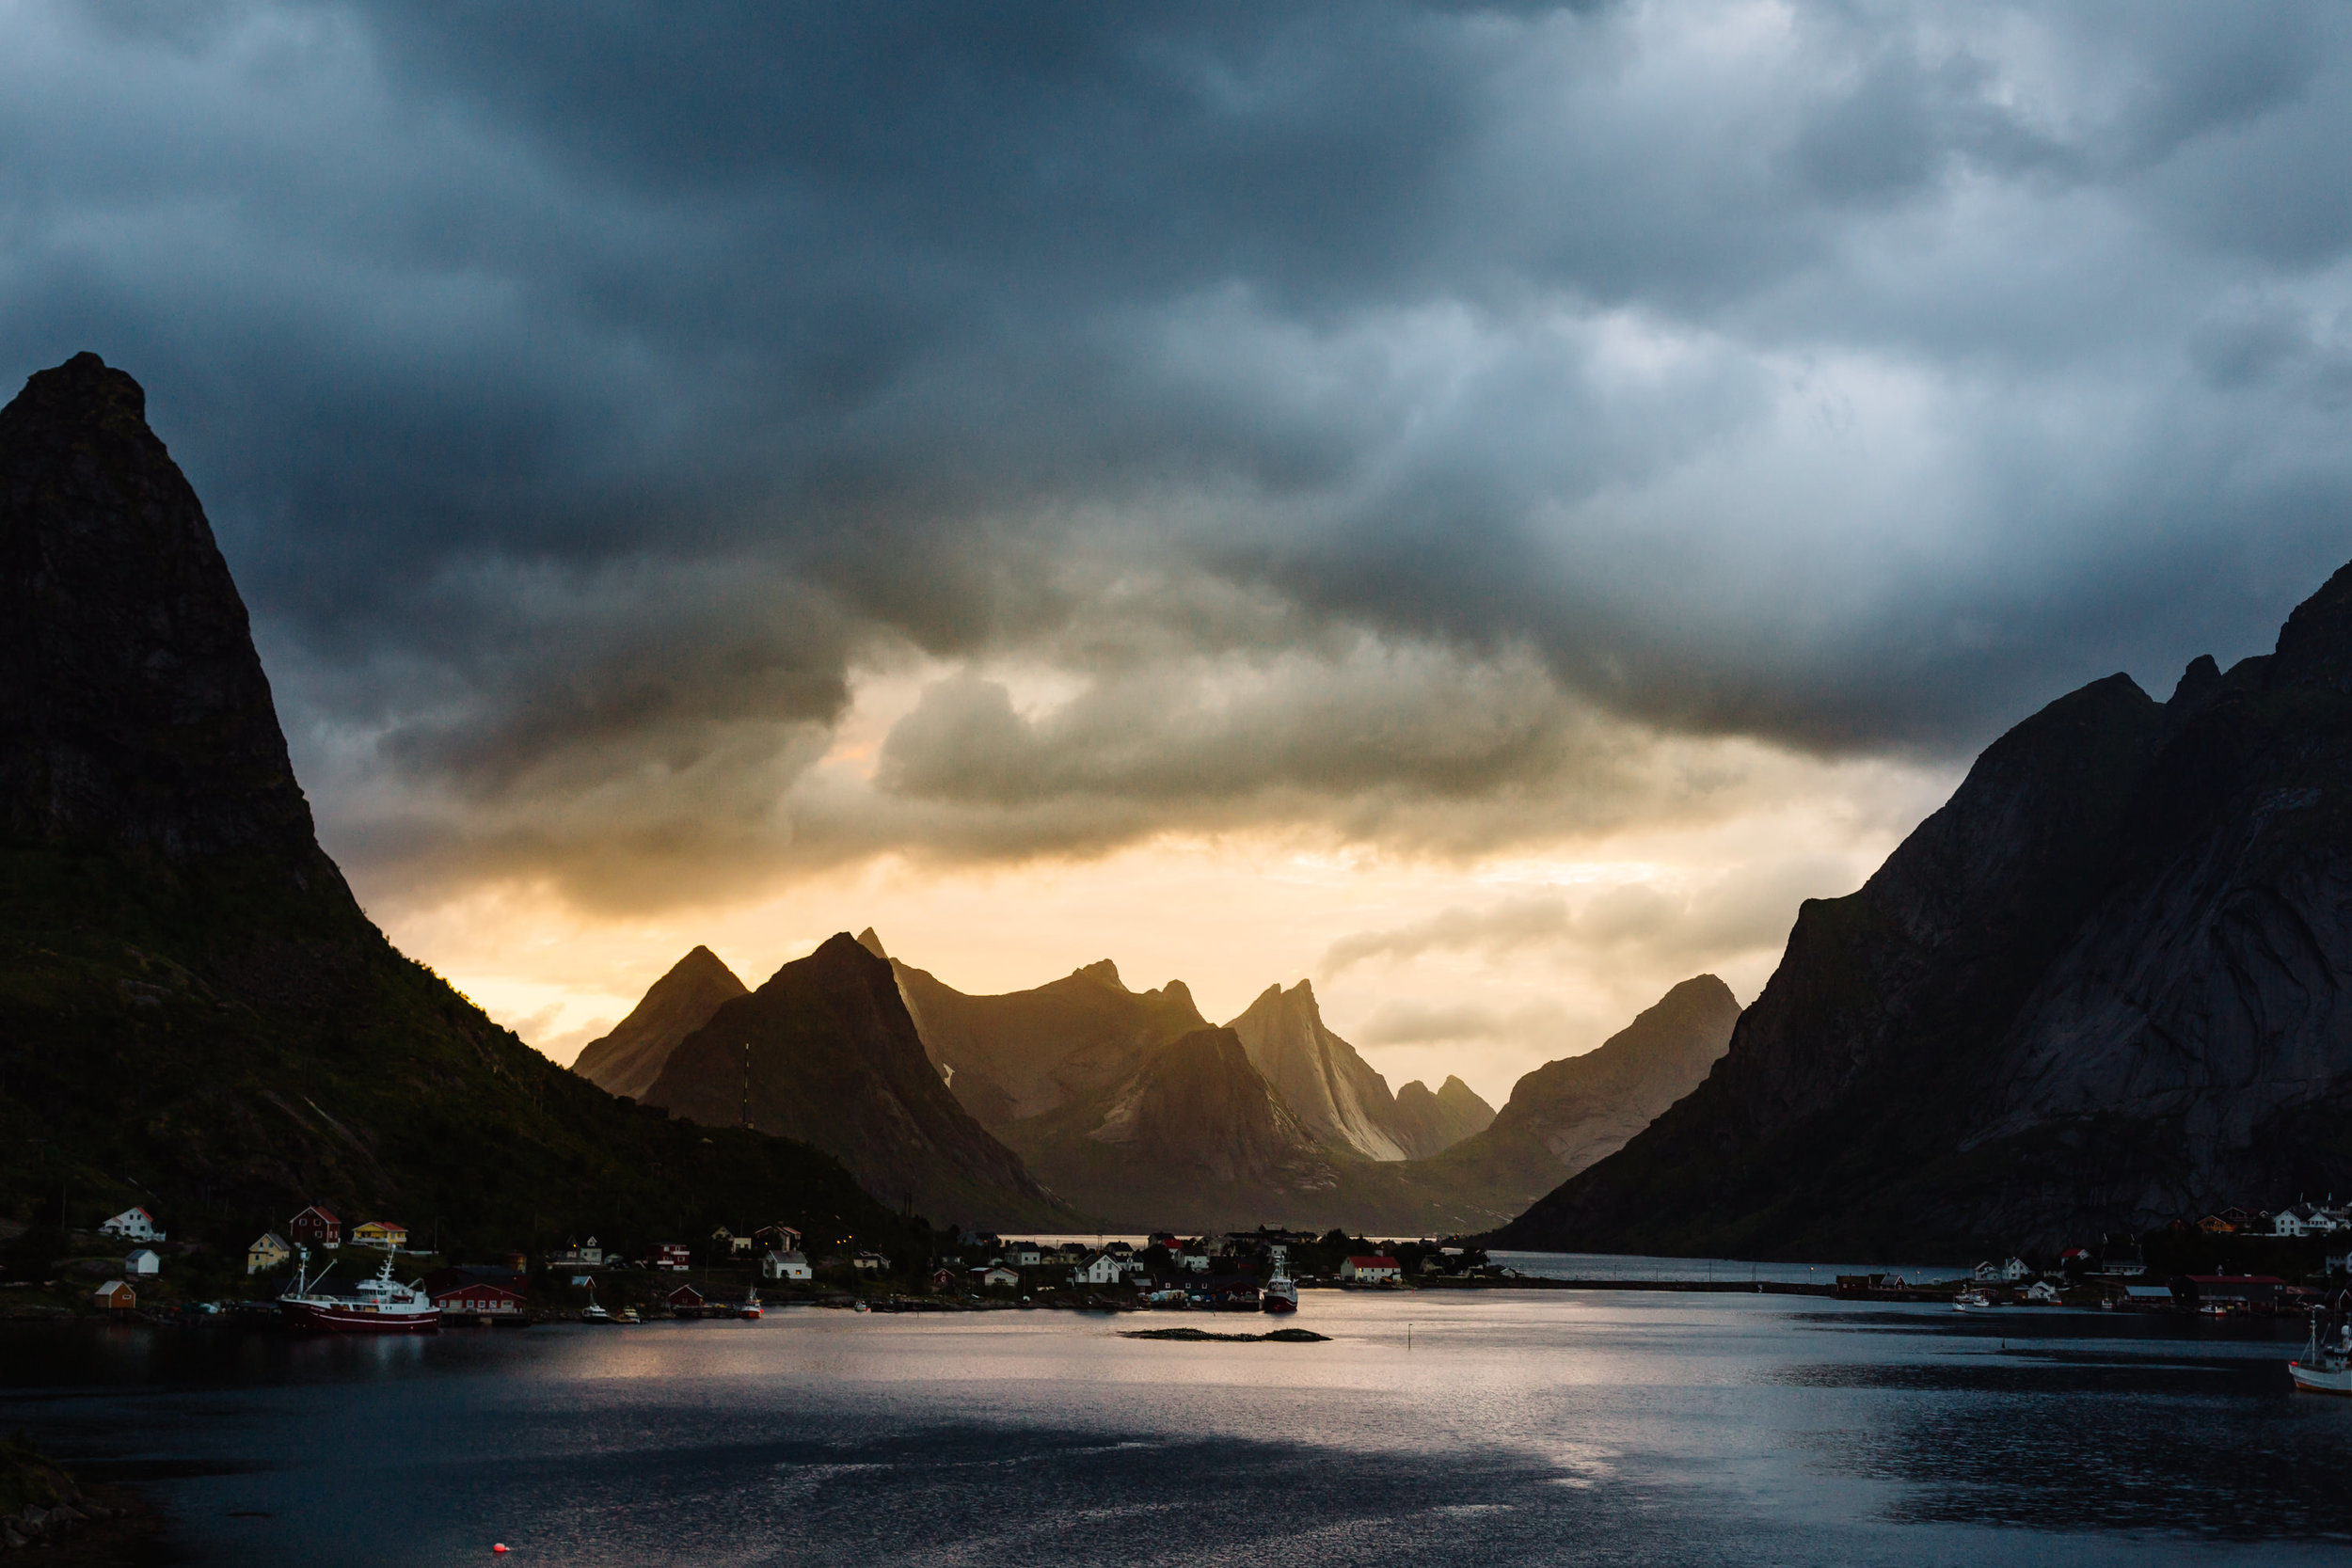 Reine midnight sun, Lofoten Islands, Norway. 2013